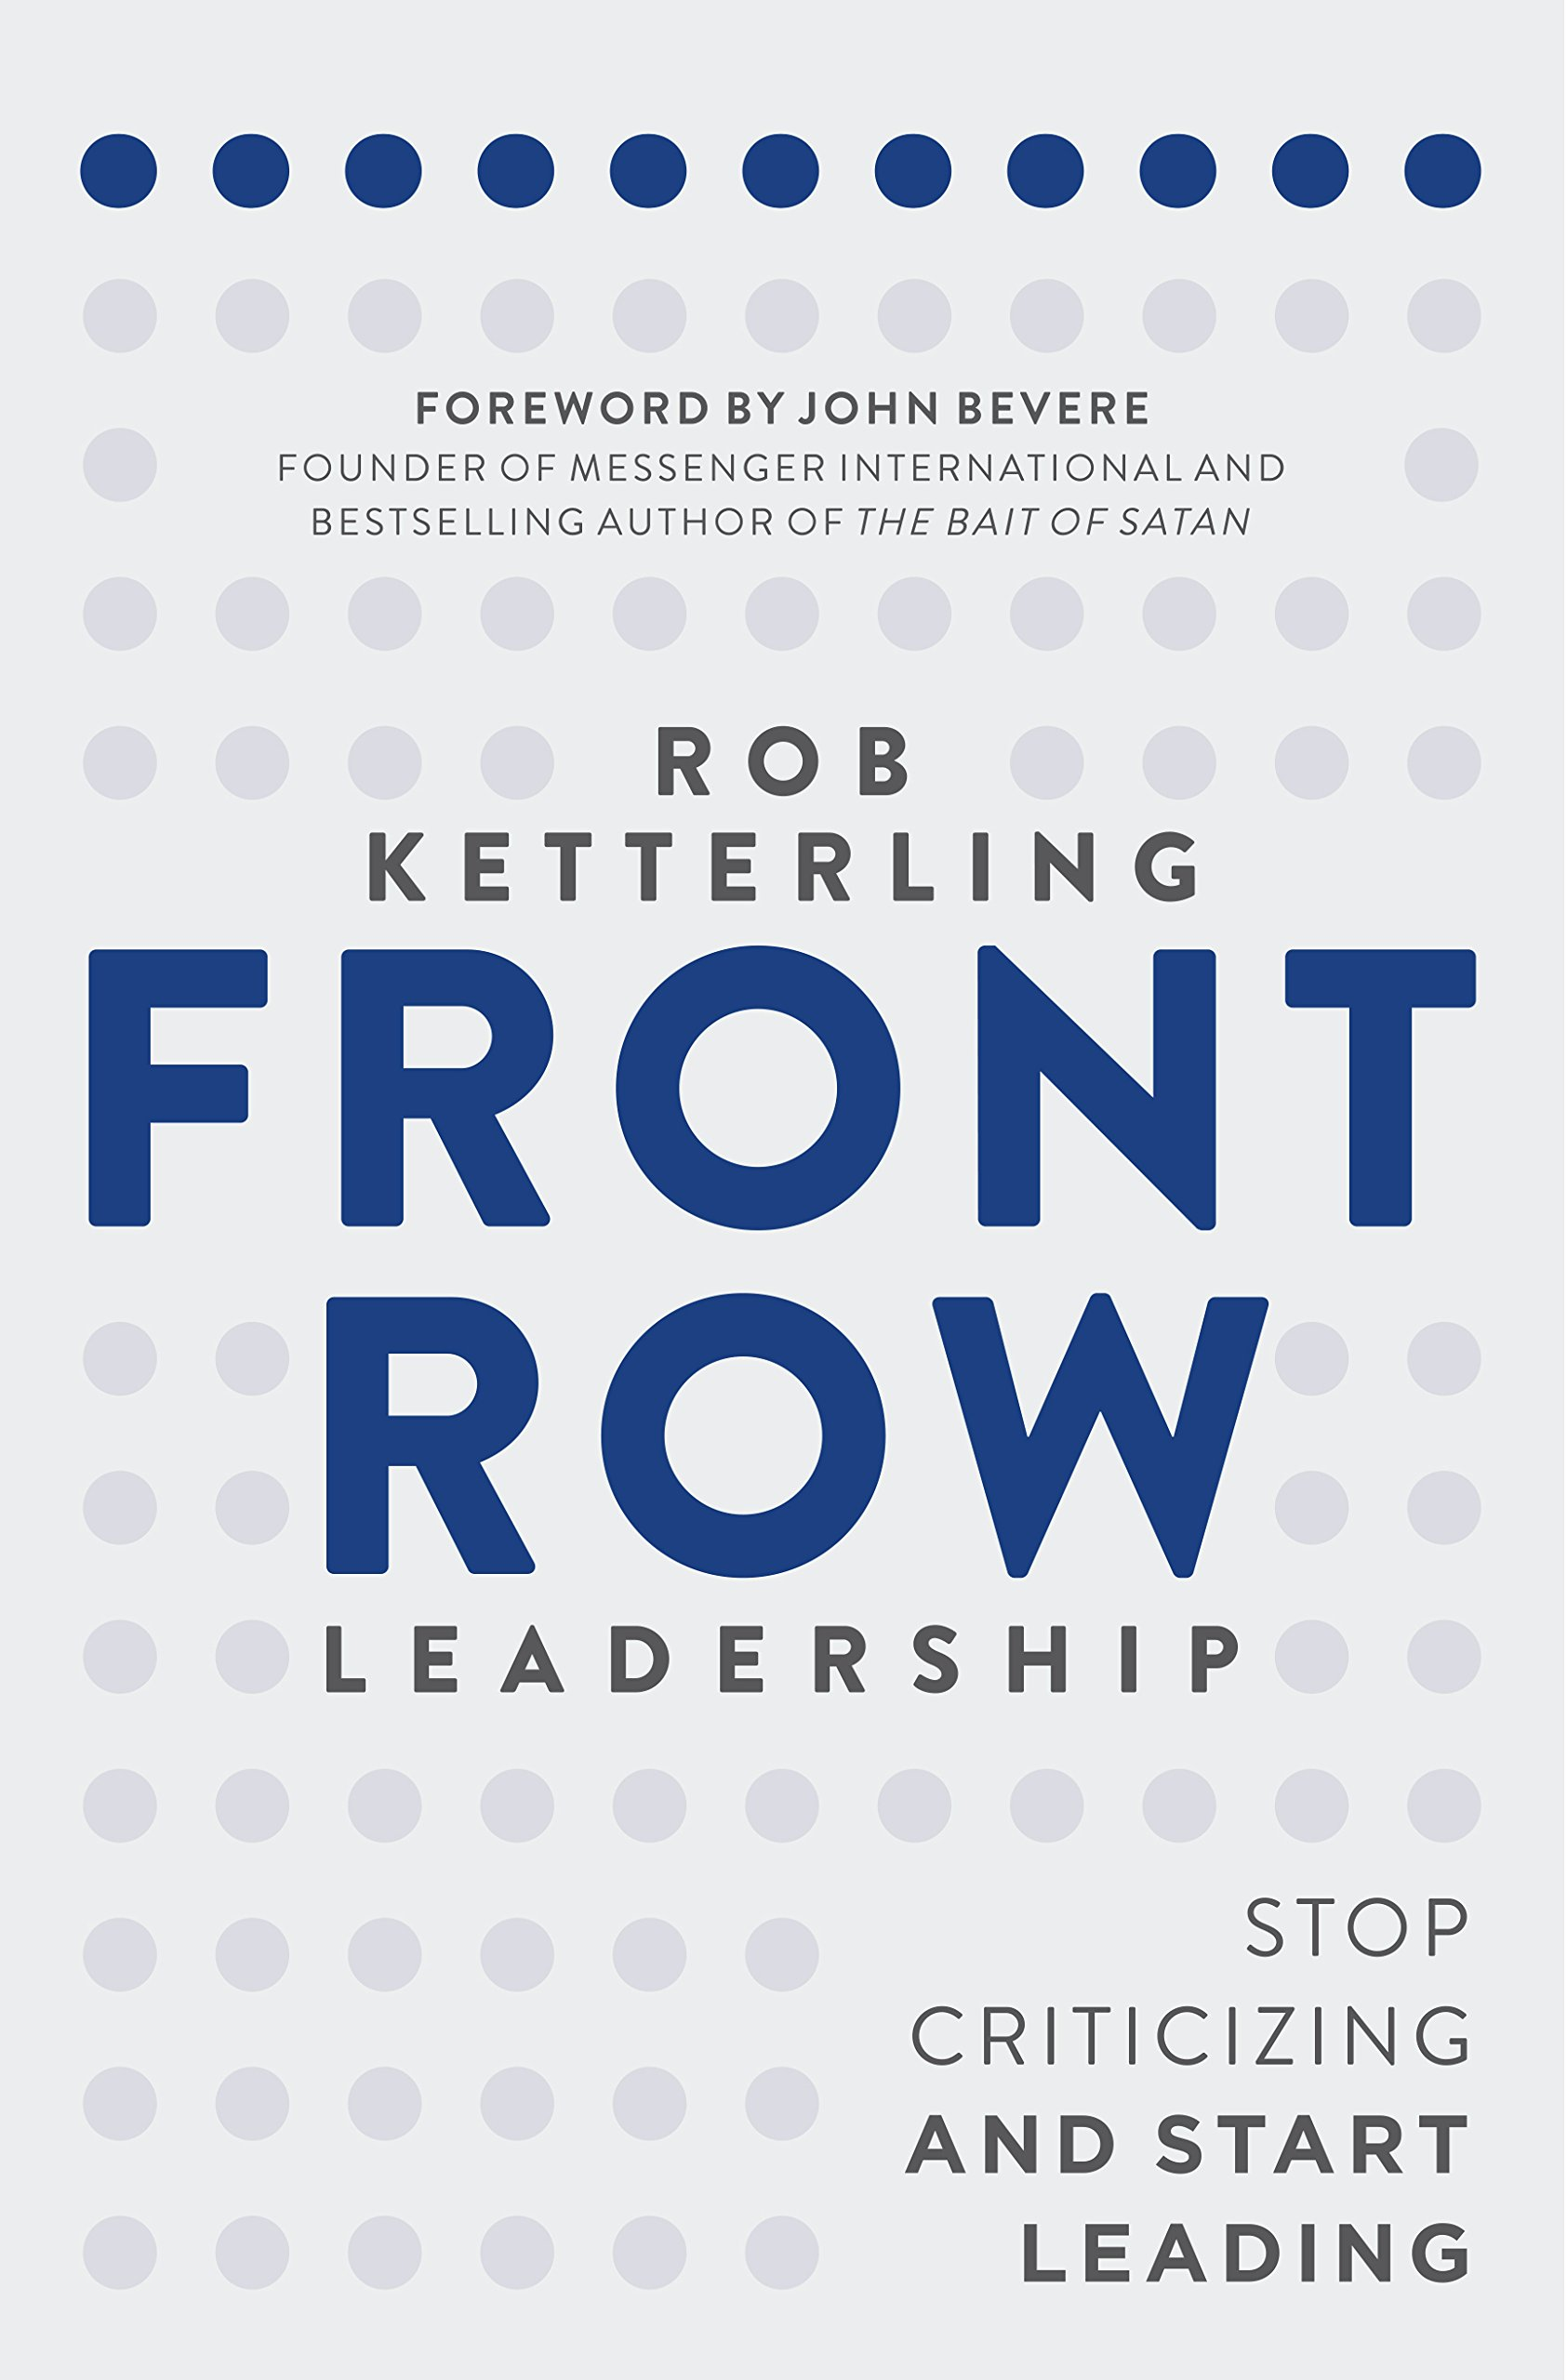 Front row leadership stop criticizing and start leading rob front row leadership stop criticizing and start leading rob ketterling john bevere 9781680671032 amazon books fandeluxe Gallery